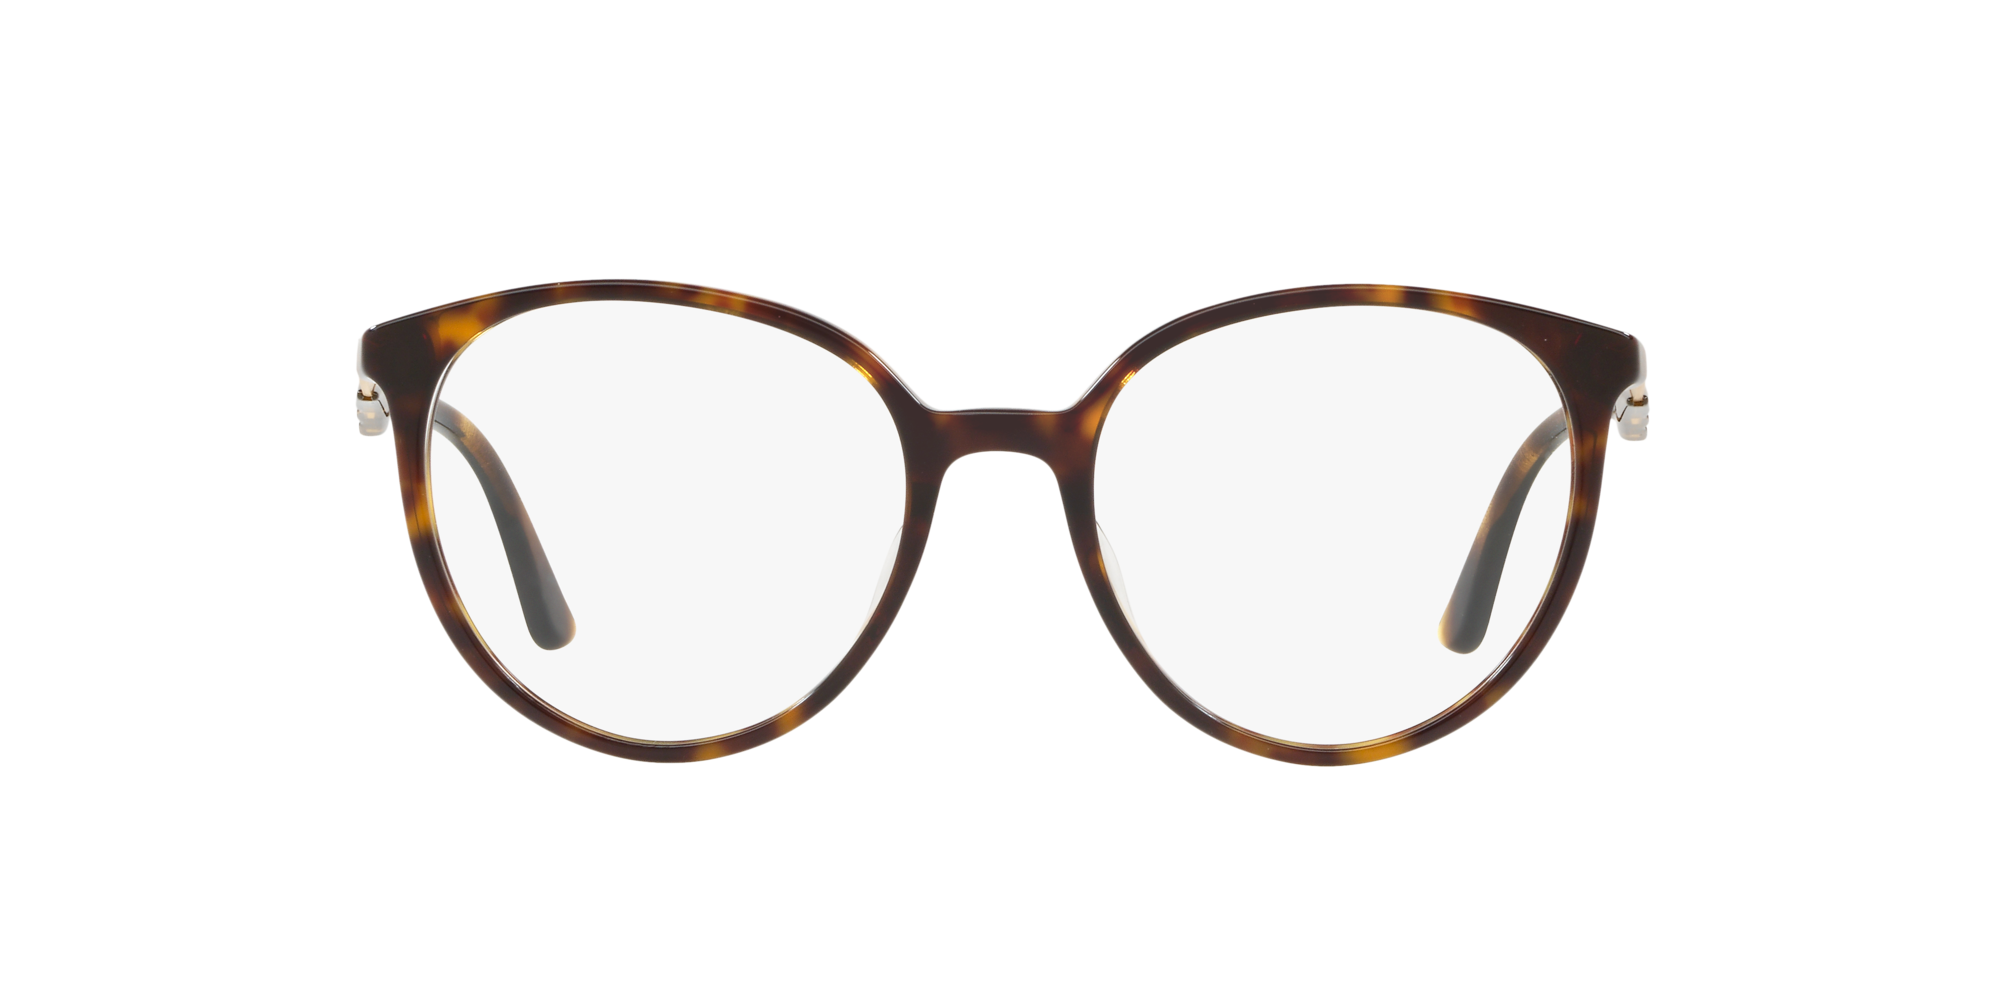 Image for VO5232F from LensCrafters | Glasses, Prescription Glasses Online, Eyewear